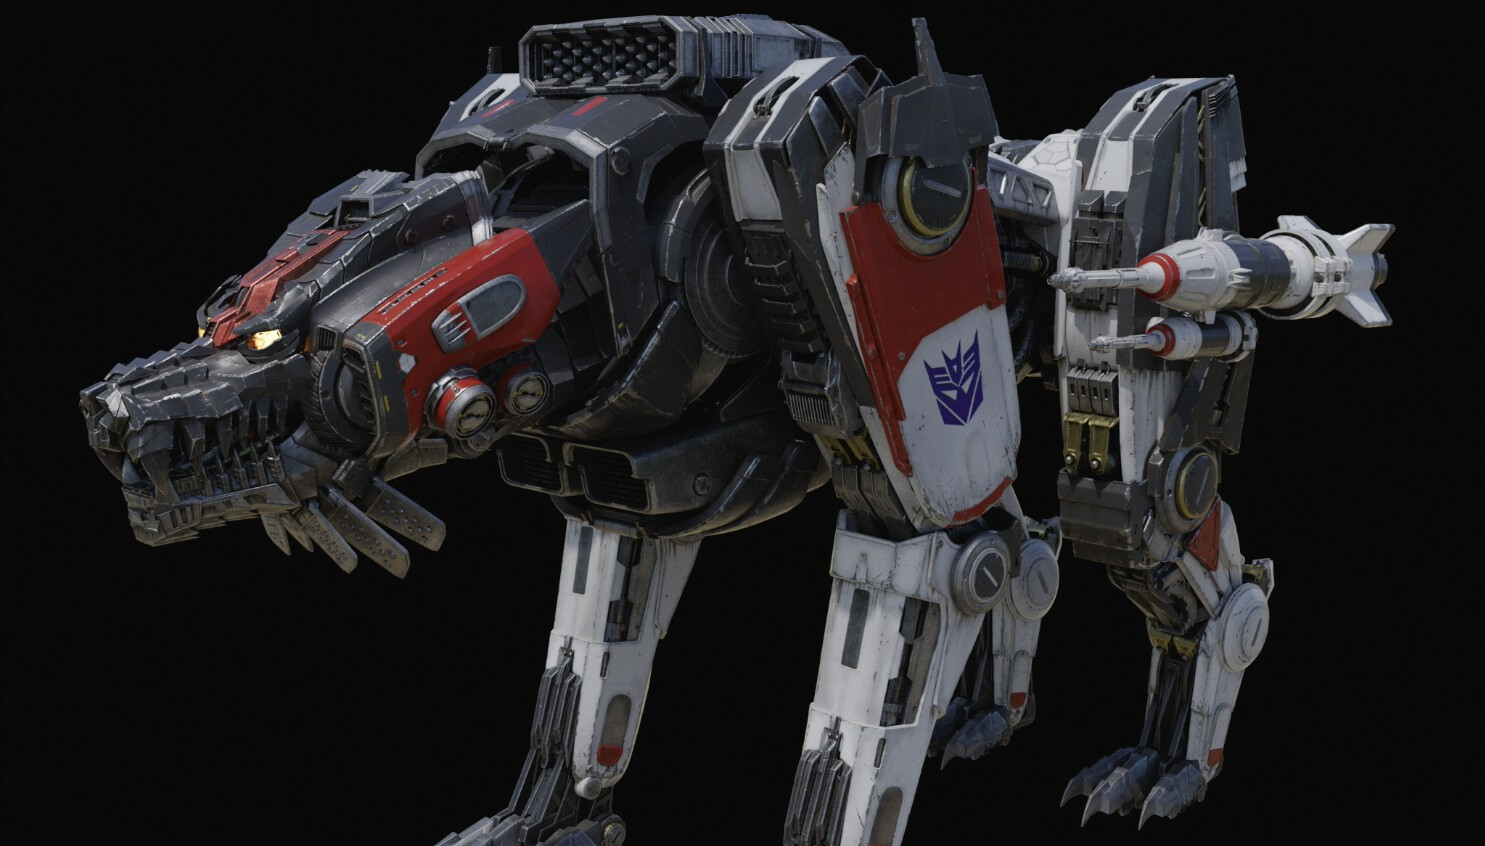 Transformers News: Concept art and closer looks of Cybertron bots from the Bumblebee film on Zavala's ArtStation